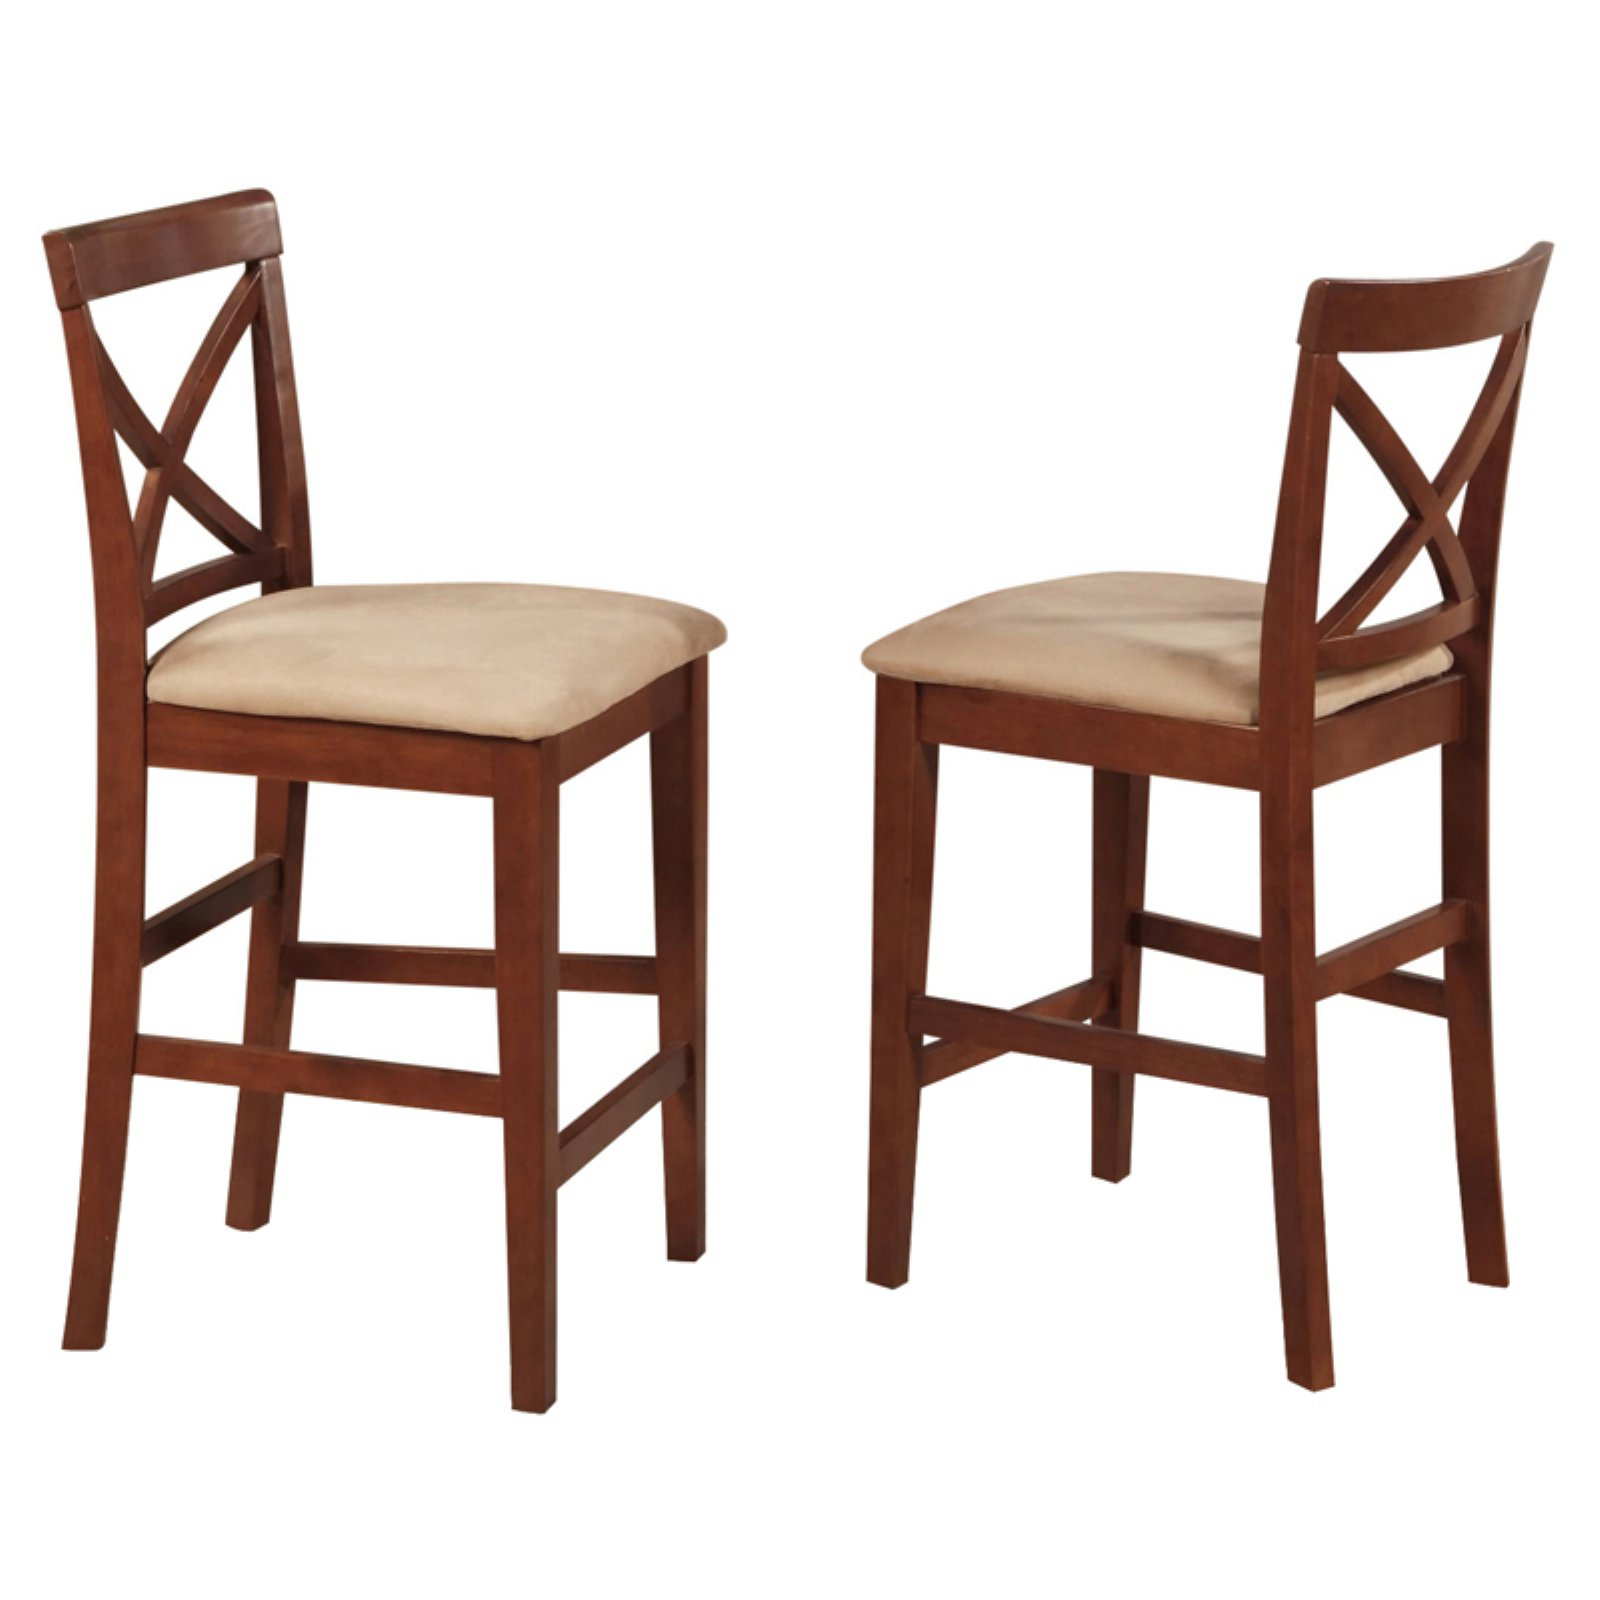 East West Furniture Boston X-Back Counter Height Stool with Microfiber Seat - Set of 2